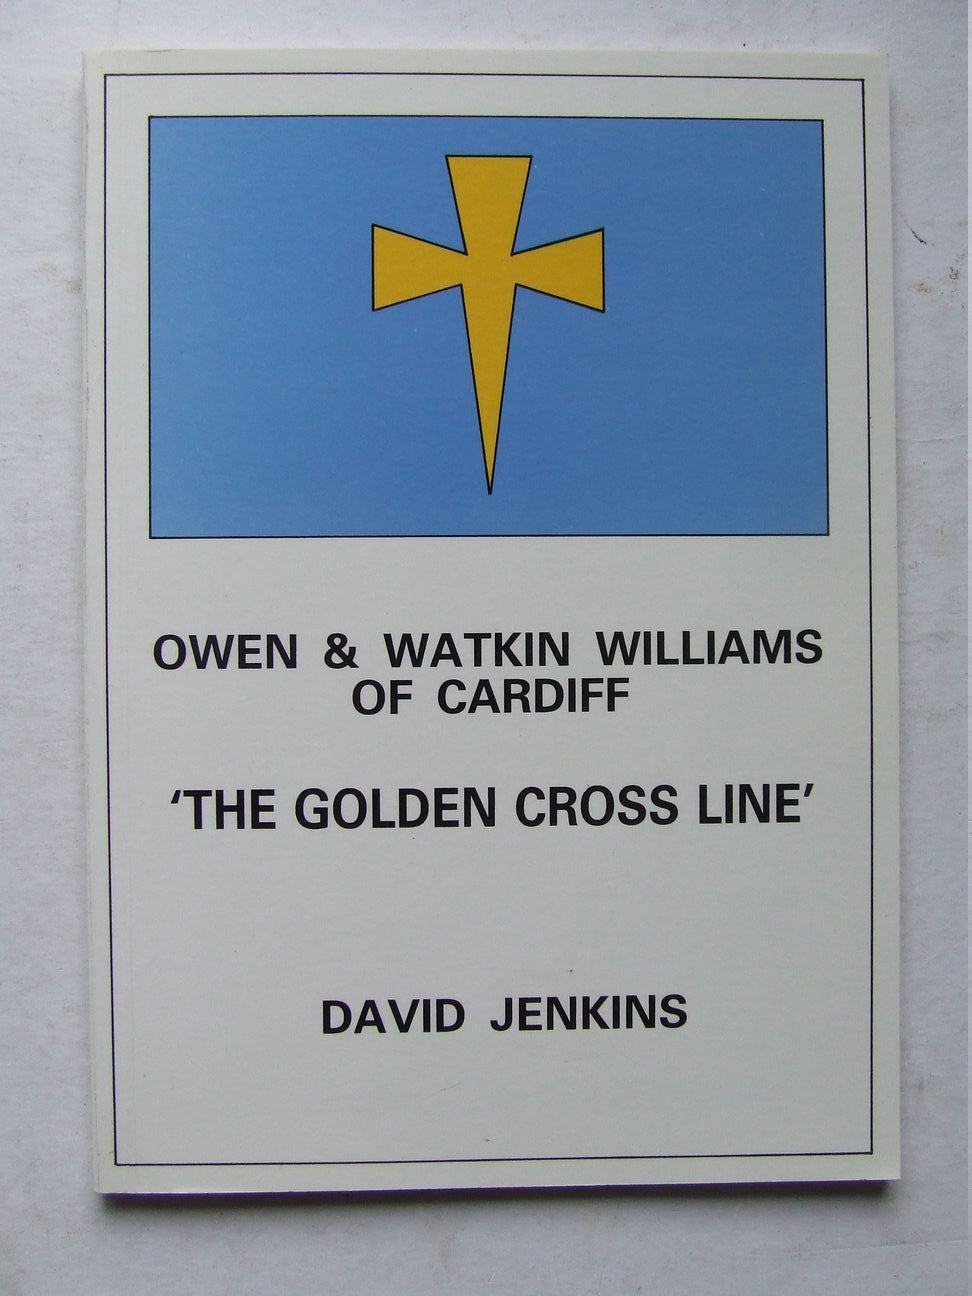 Owen and Watkin Williams of Cardiff, 'The Golden Cross Line'